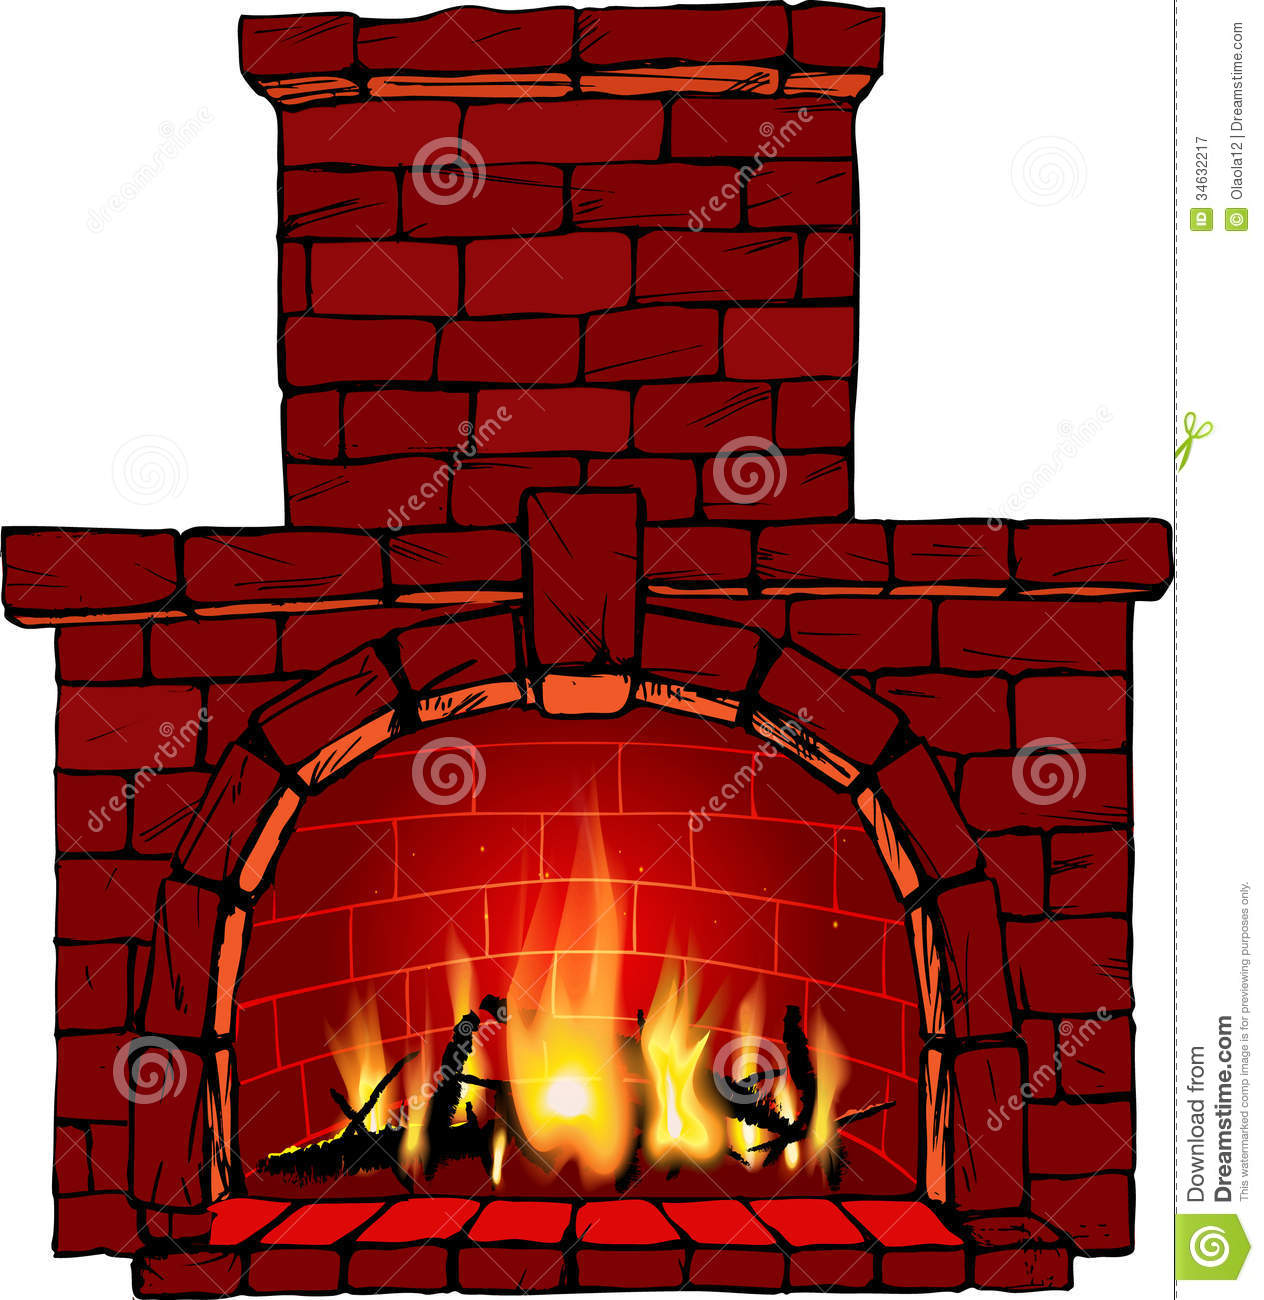 Chimney clipart #1, Download drawings